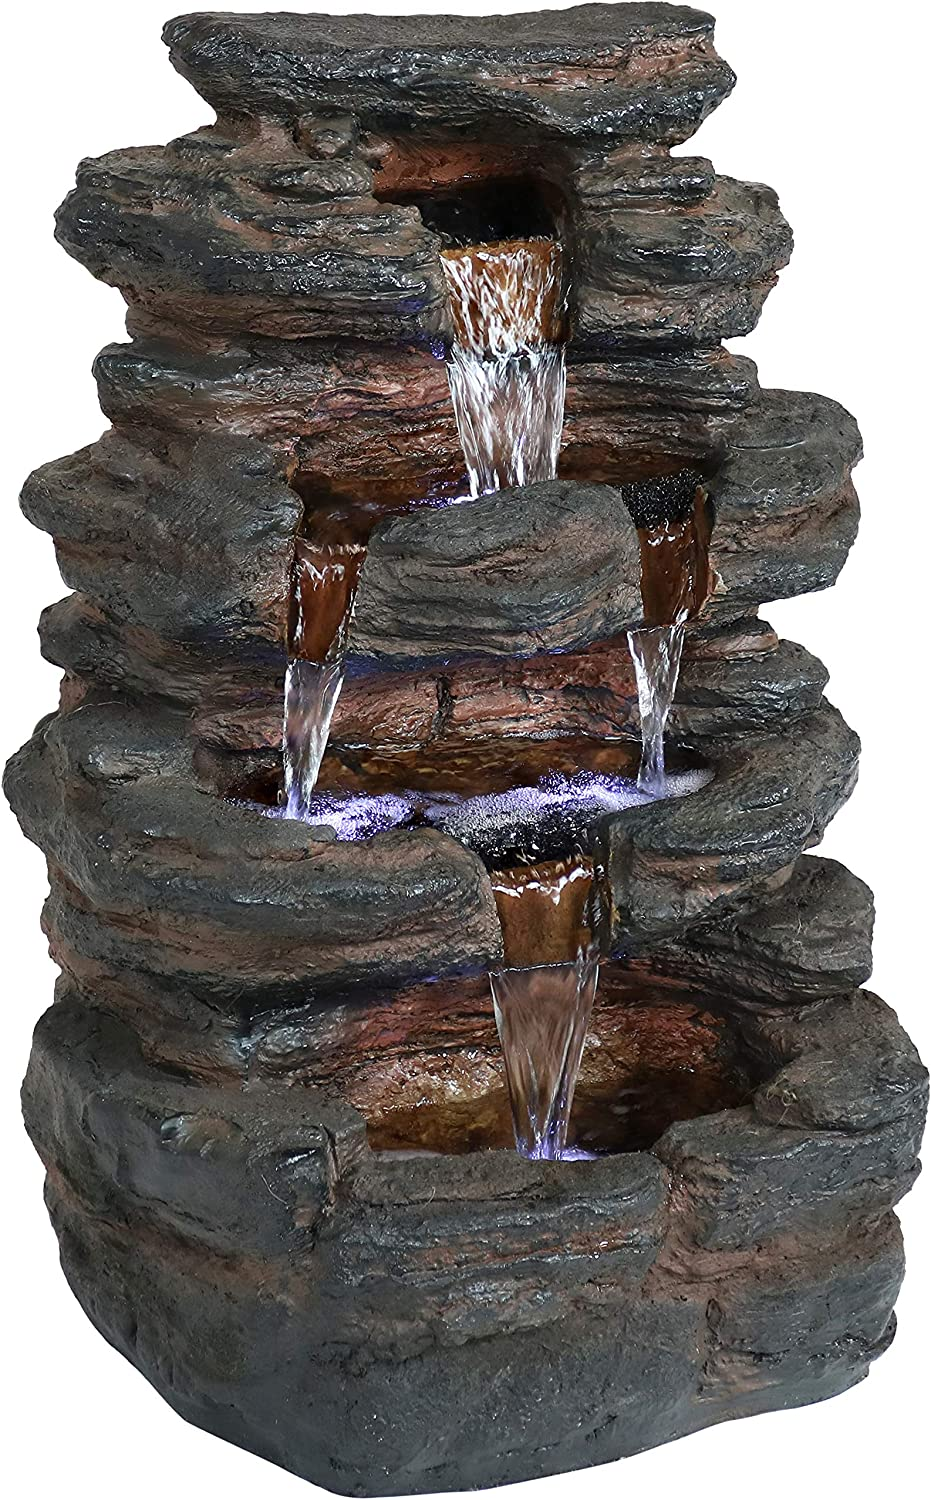 Sunnydaze Tumbling Falls Rock Style Outdoor Water Fountain with LED Lights - Corded Electric - Garden, Patio and Lawn Decor - Outdoor Waterfall Feature - 21-Inch